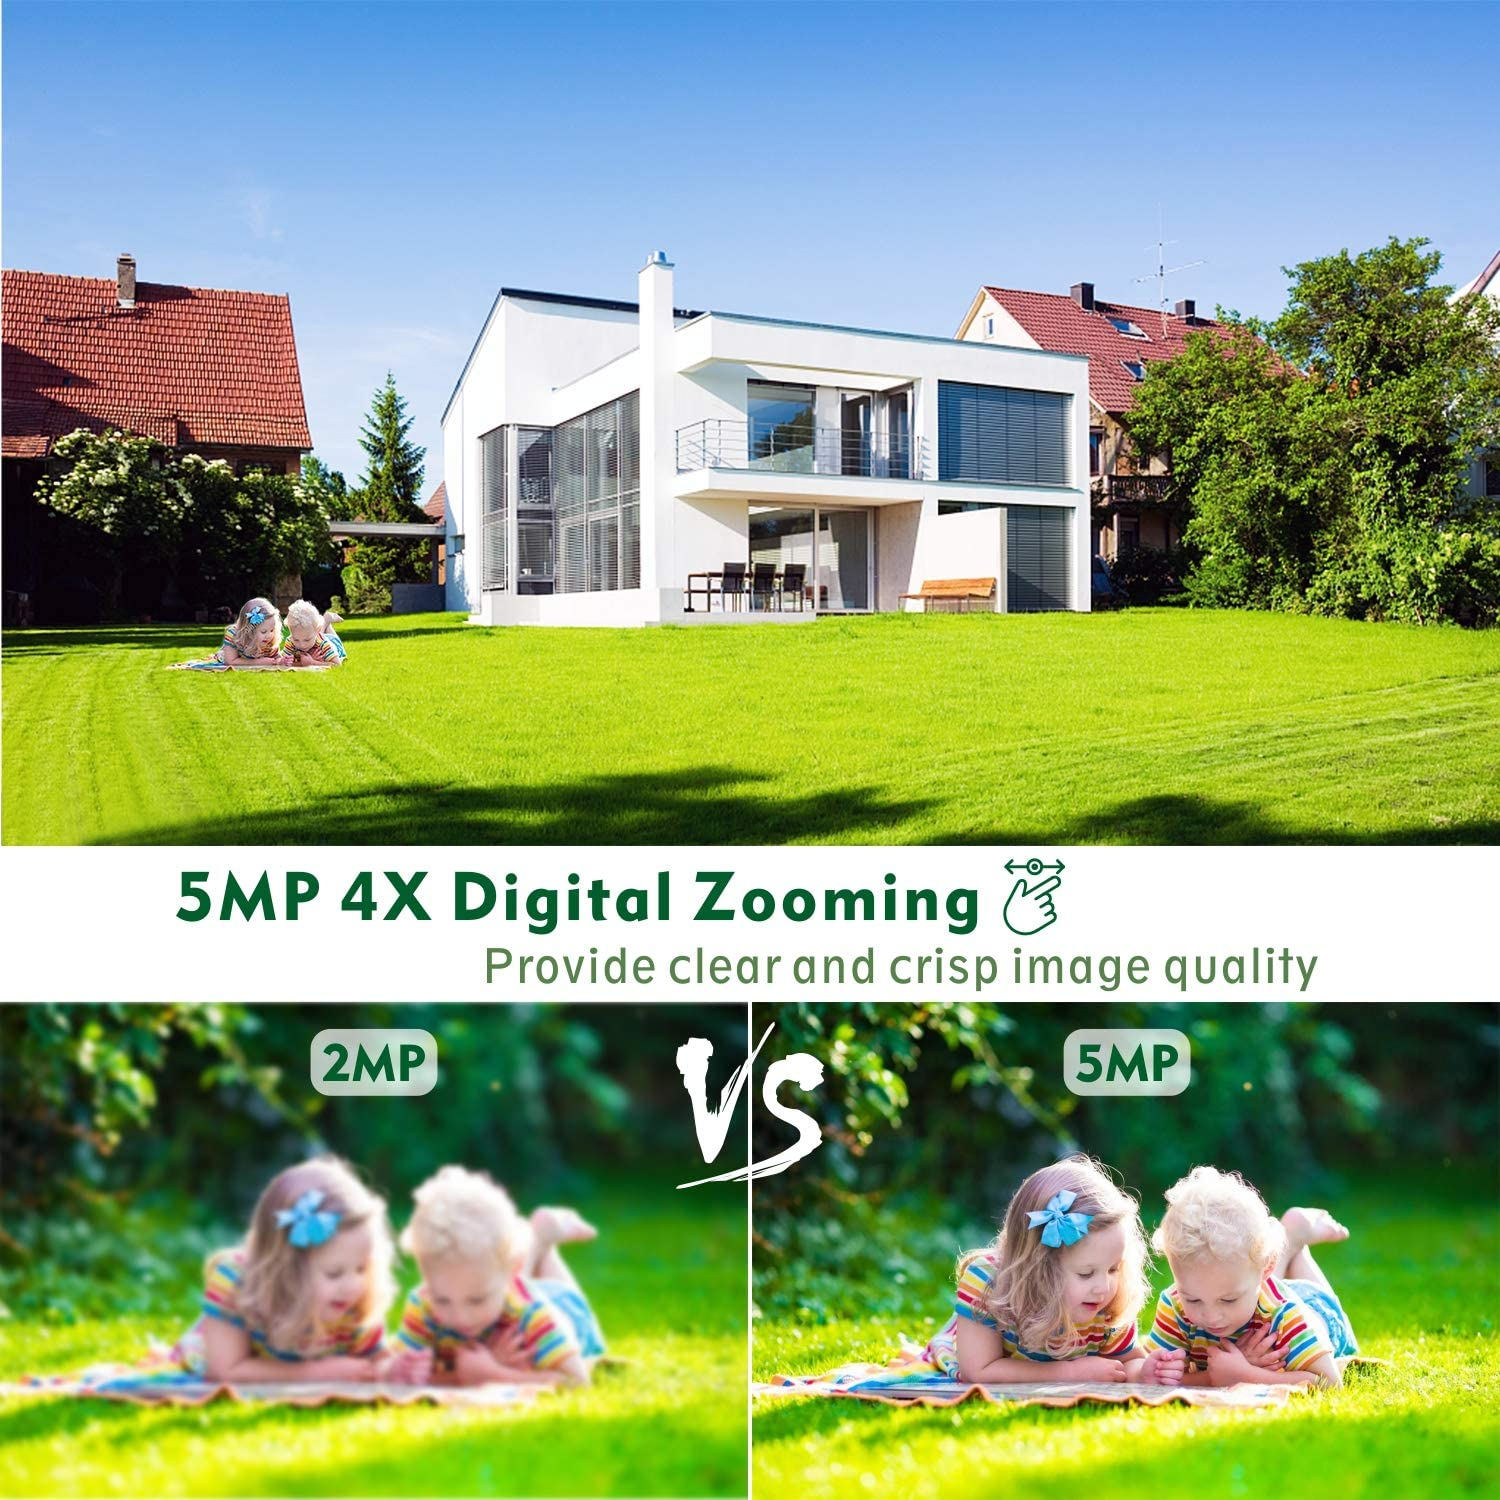 5MP Security Camera Outdoor 2560/×1920 TOCWOC Home Surveillance Camera with Pan//Tilt Waterproof Wi-Fi Camera Color Night Vision 2-Way Audio Human Detection Auto Tracking and Cloud//SD Slot Storage